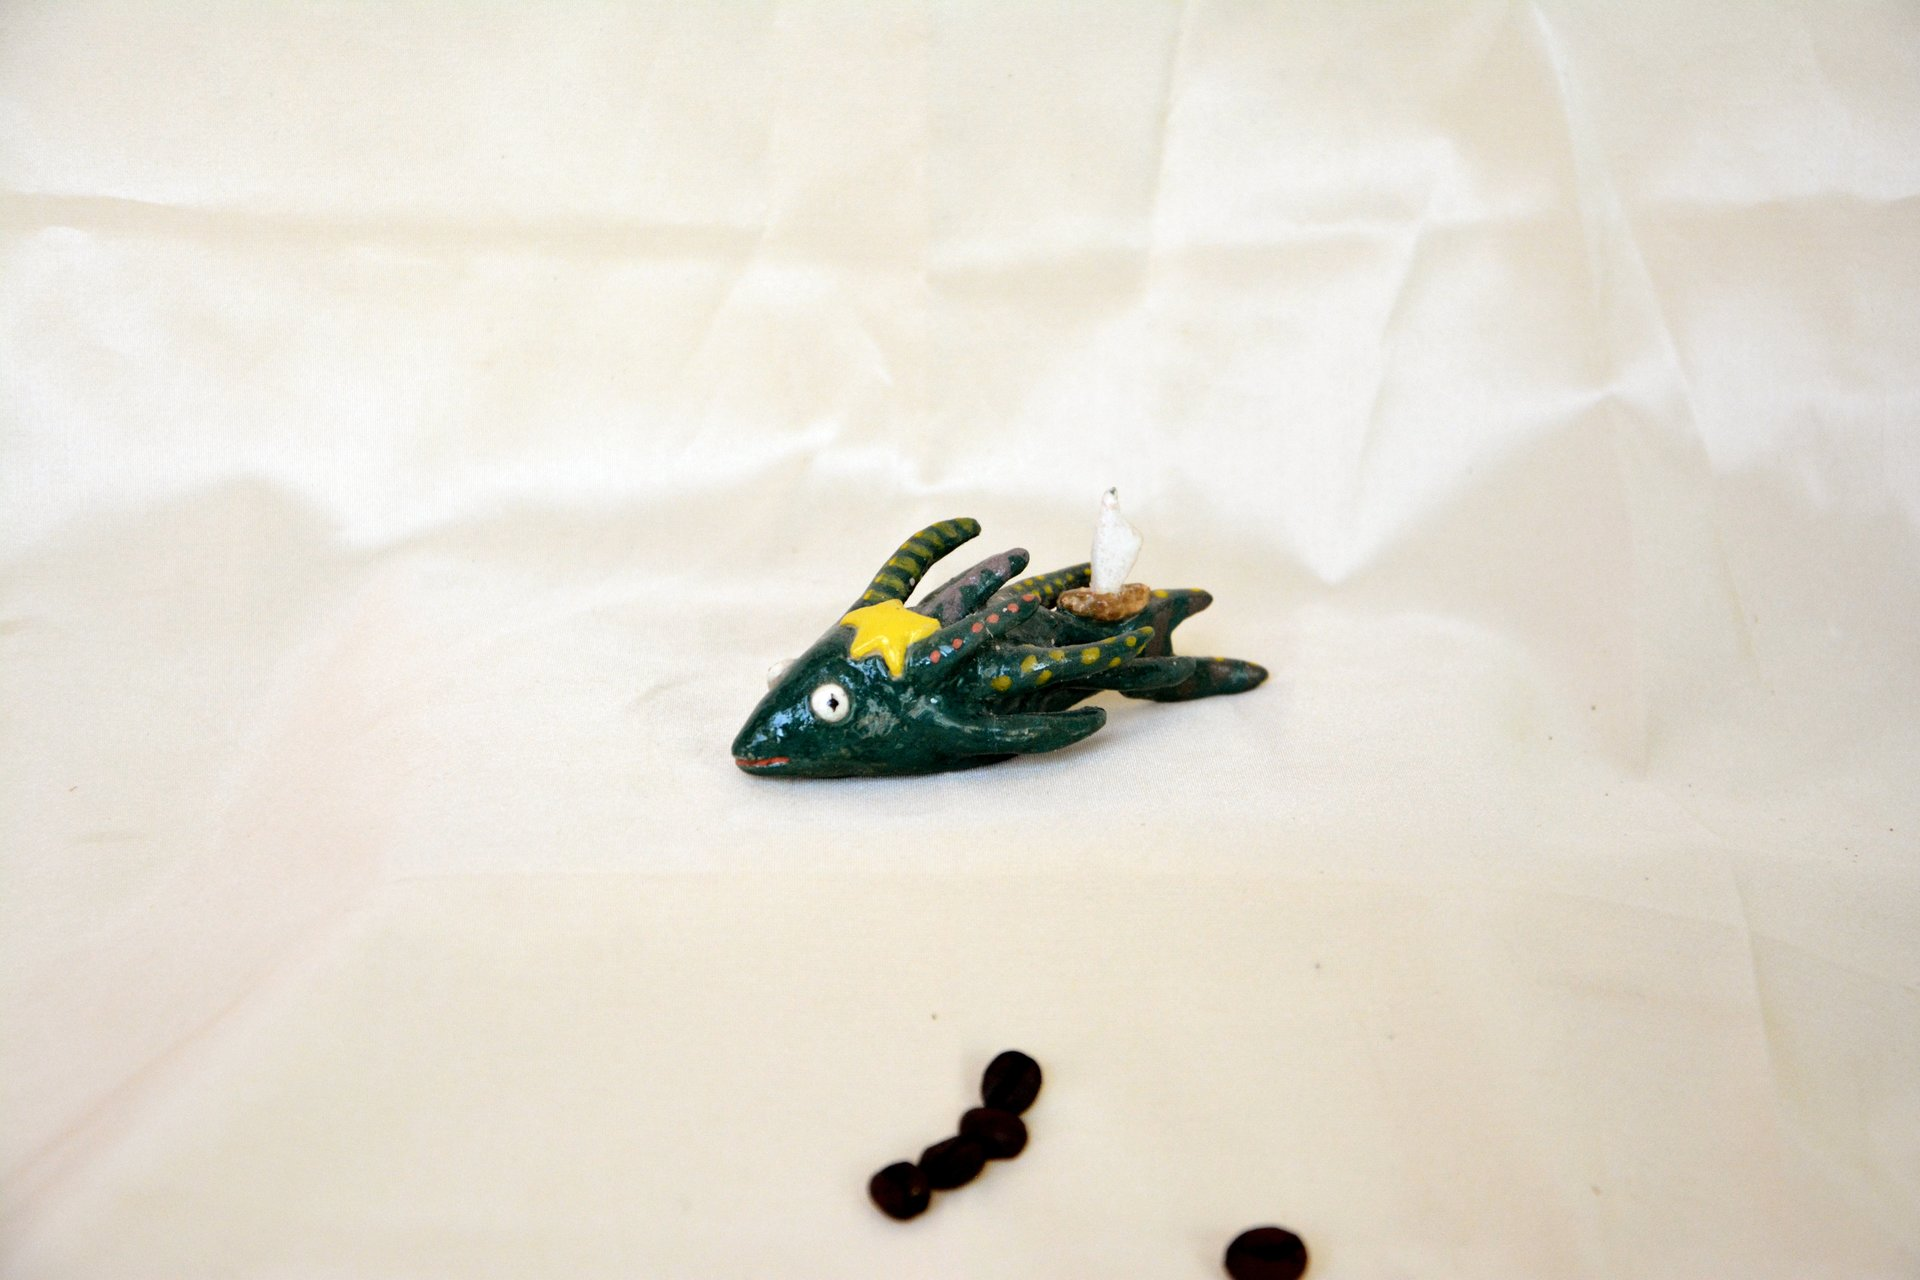 Sea spirit - Ceramic fantastic creatures, length - 10 cm, height - 3.5 cm, photo 1 of 2.